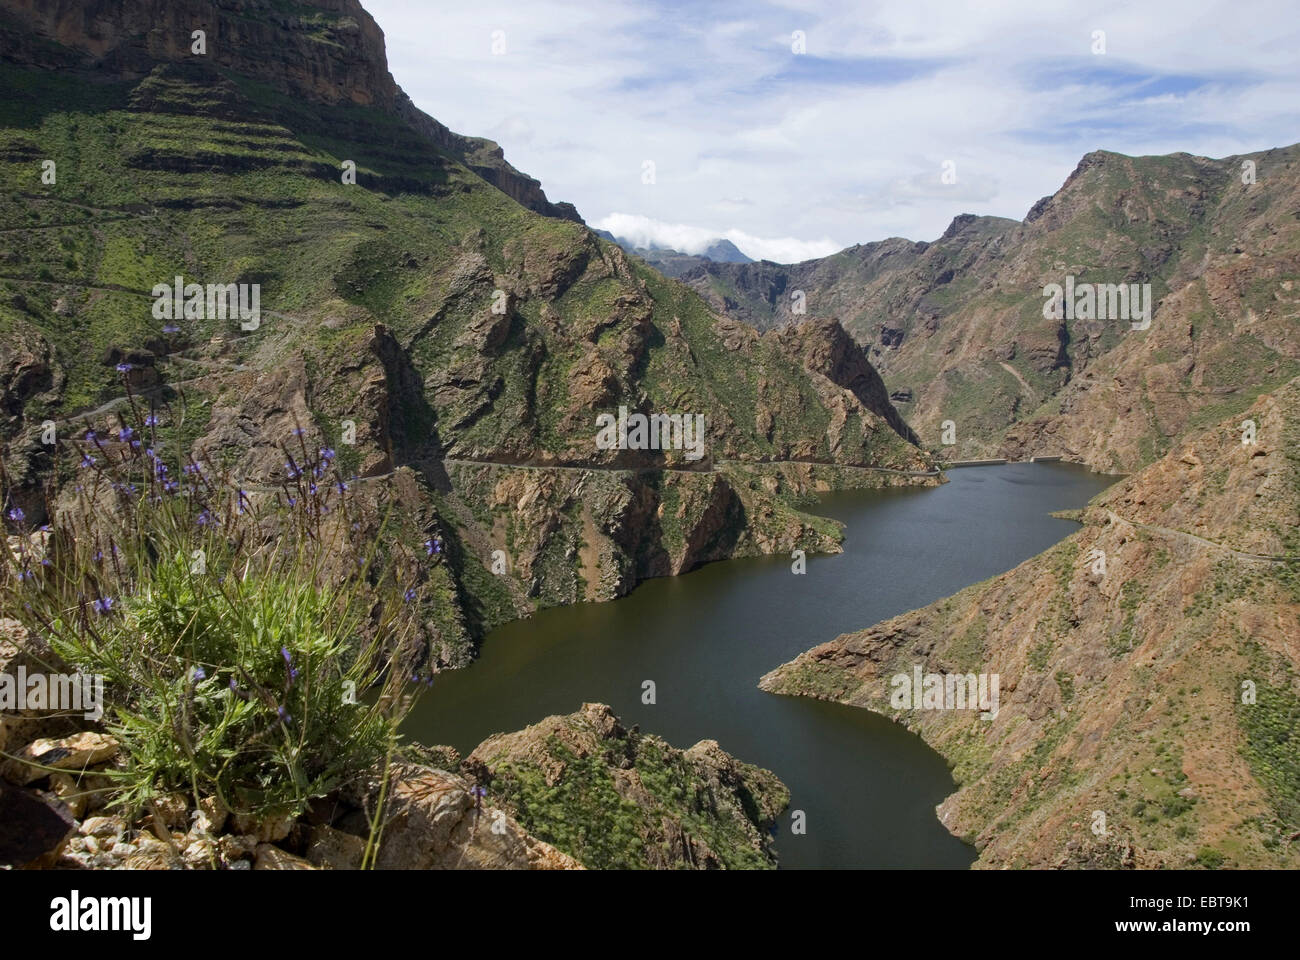 view from a mountain slope at the storage lake 'Presa del Parralillo', Canary Islands, Gran Canaria Stock Photo